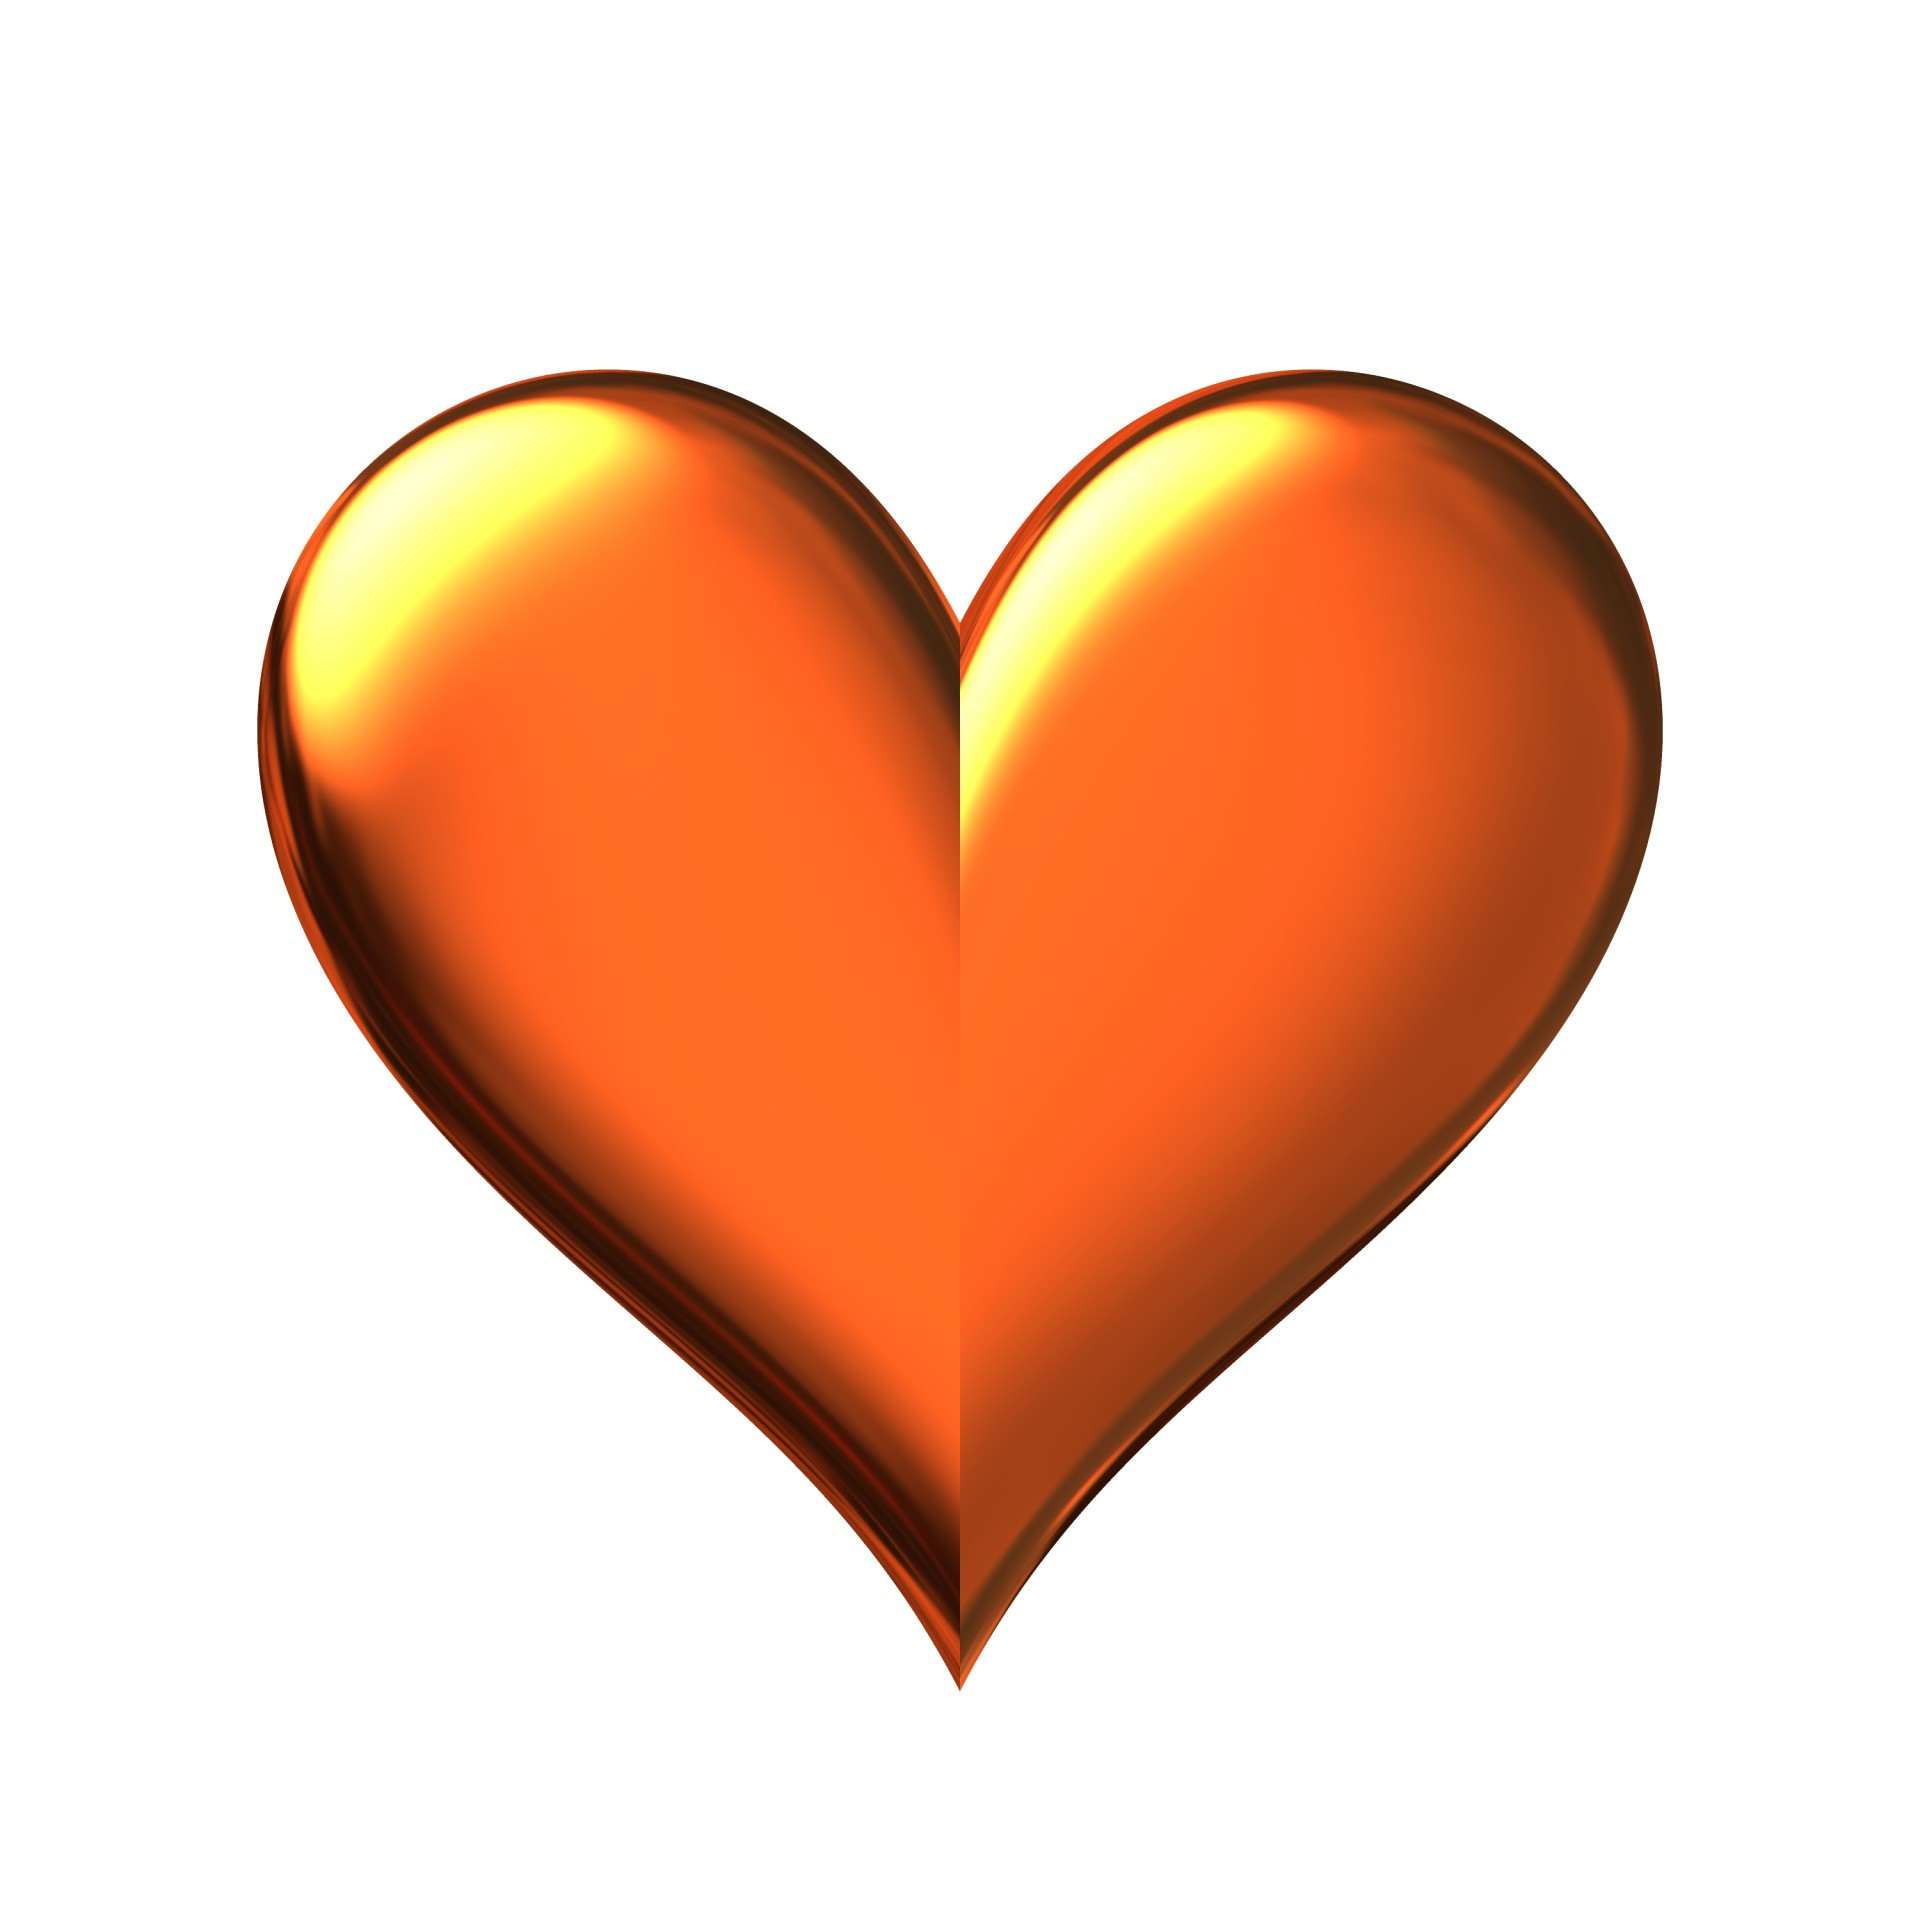 Golden Heart Free Stock Photo Public Domain Pictures